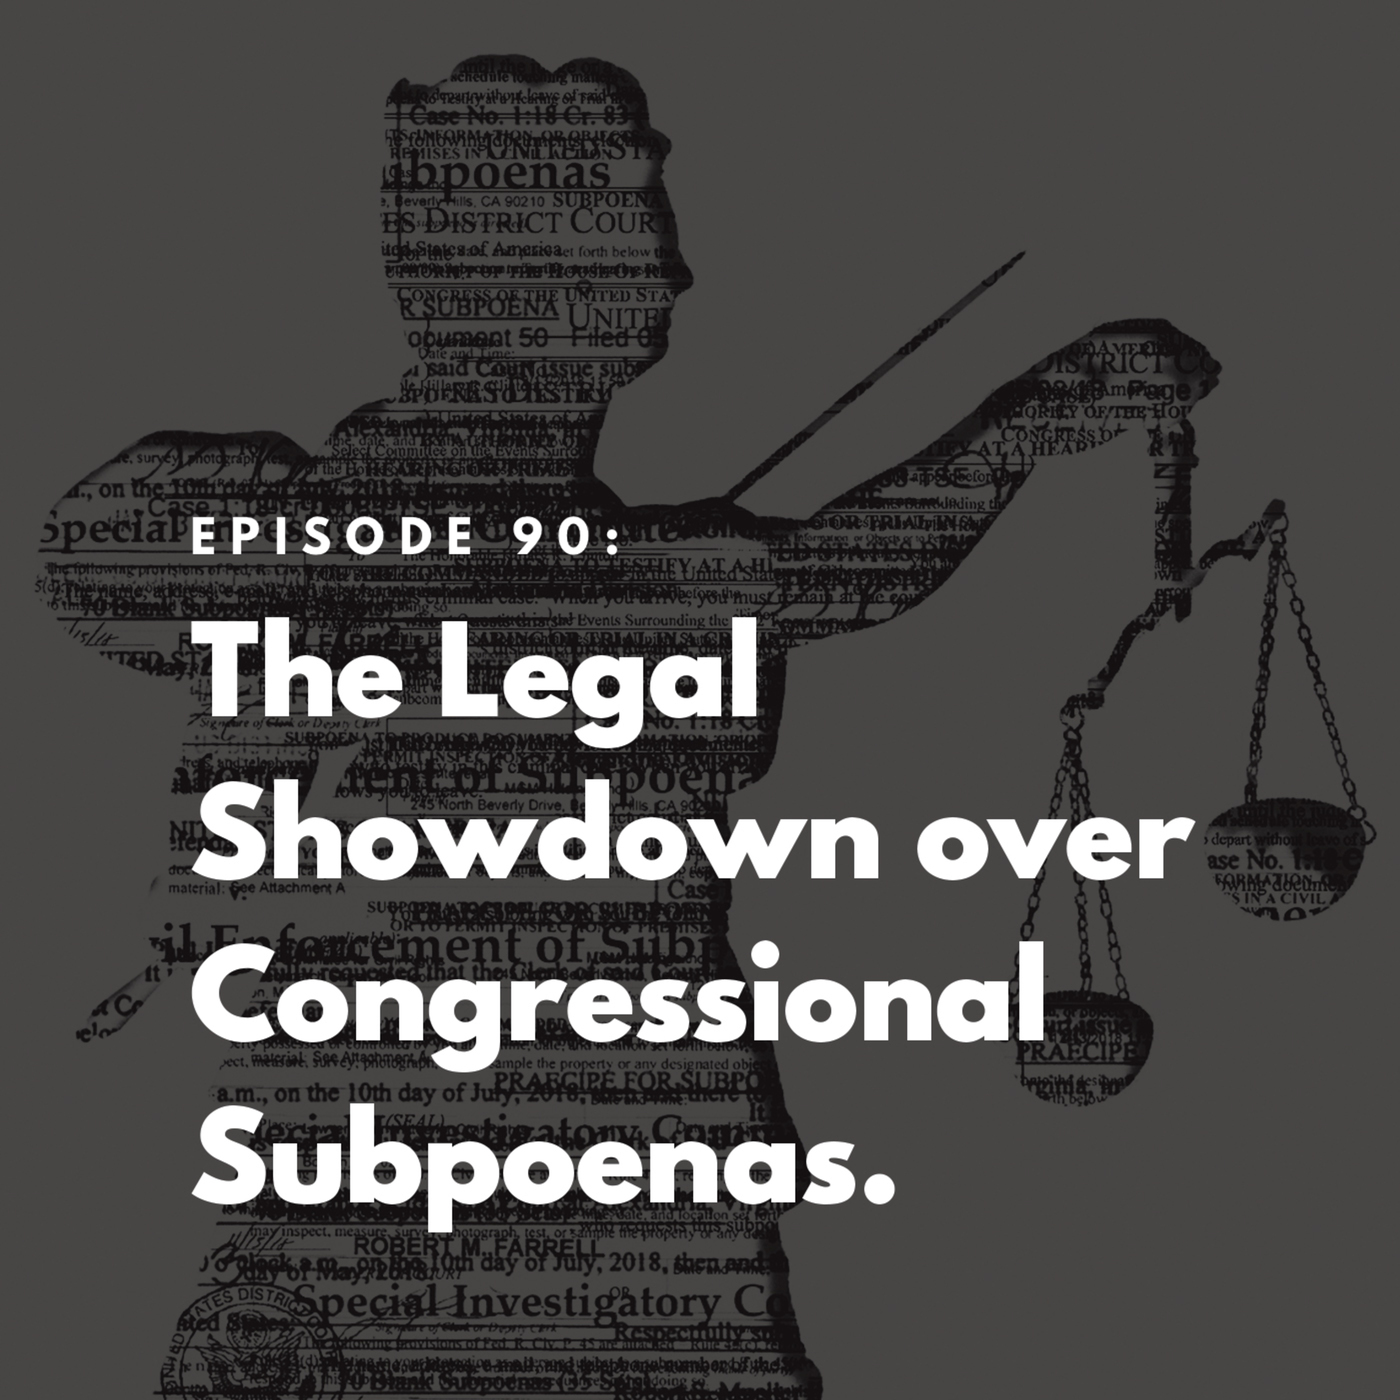 Trump Invokes Executive Privilege Over Mueller Report: The Bulwark Podcast: The Legal Showdown Over Congressional